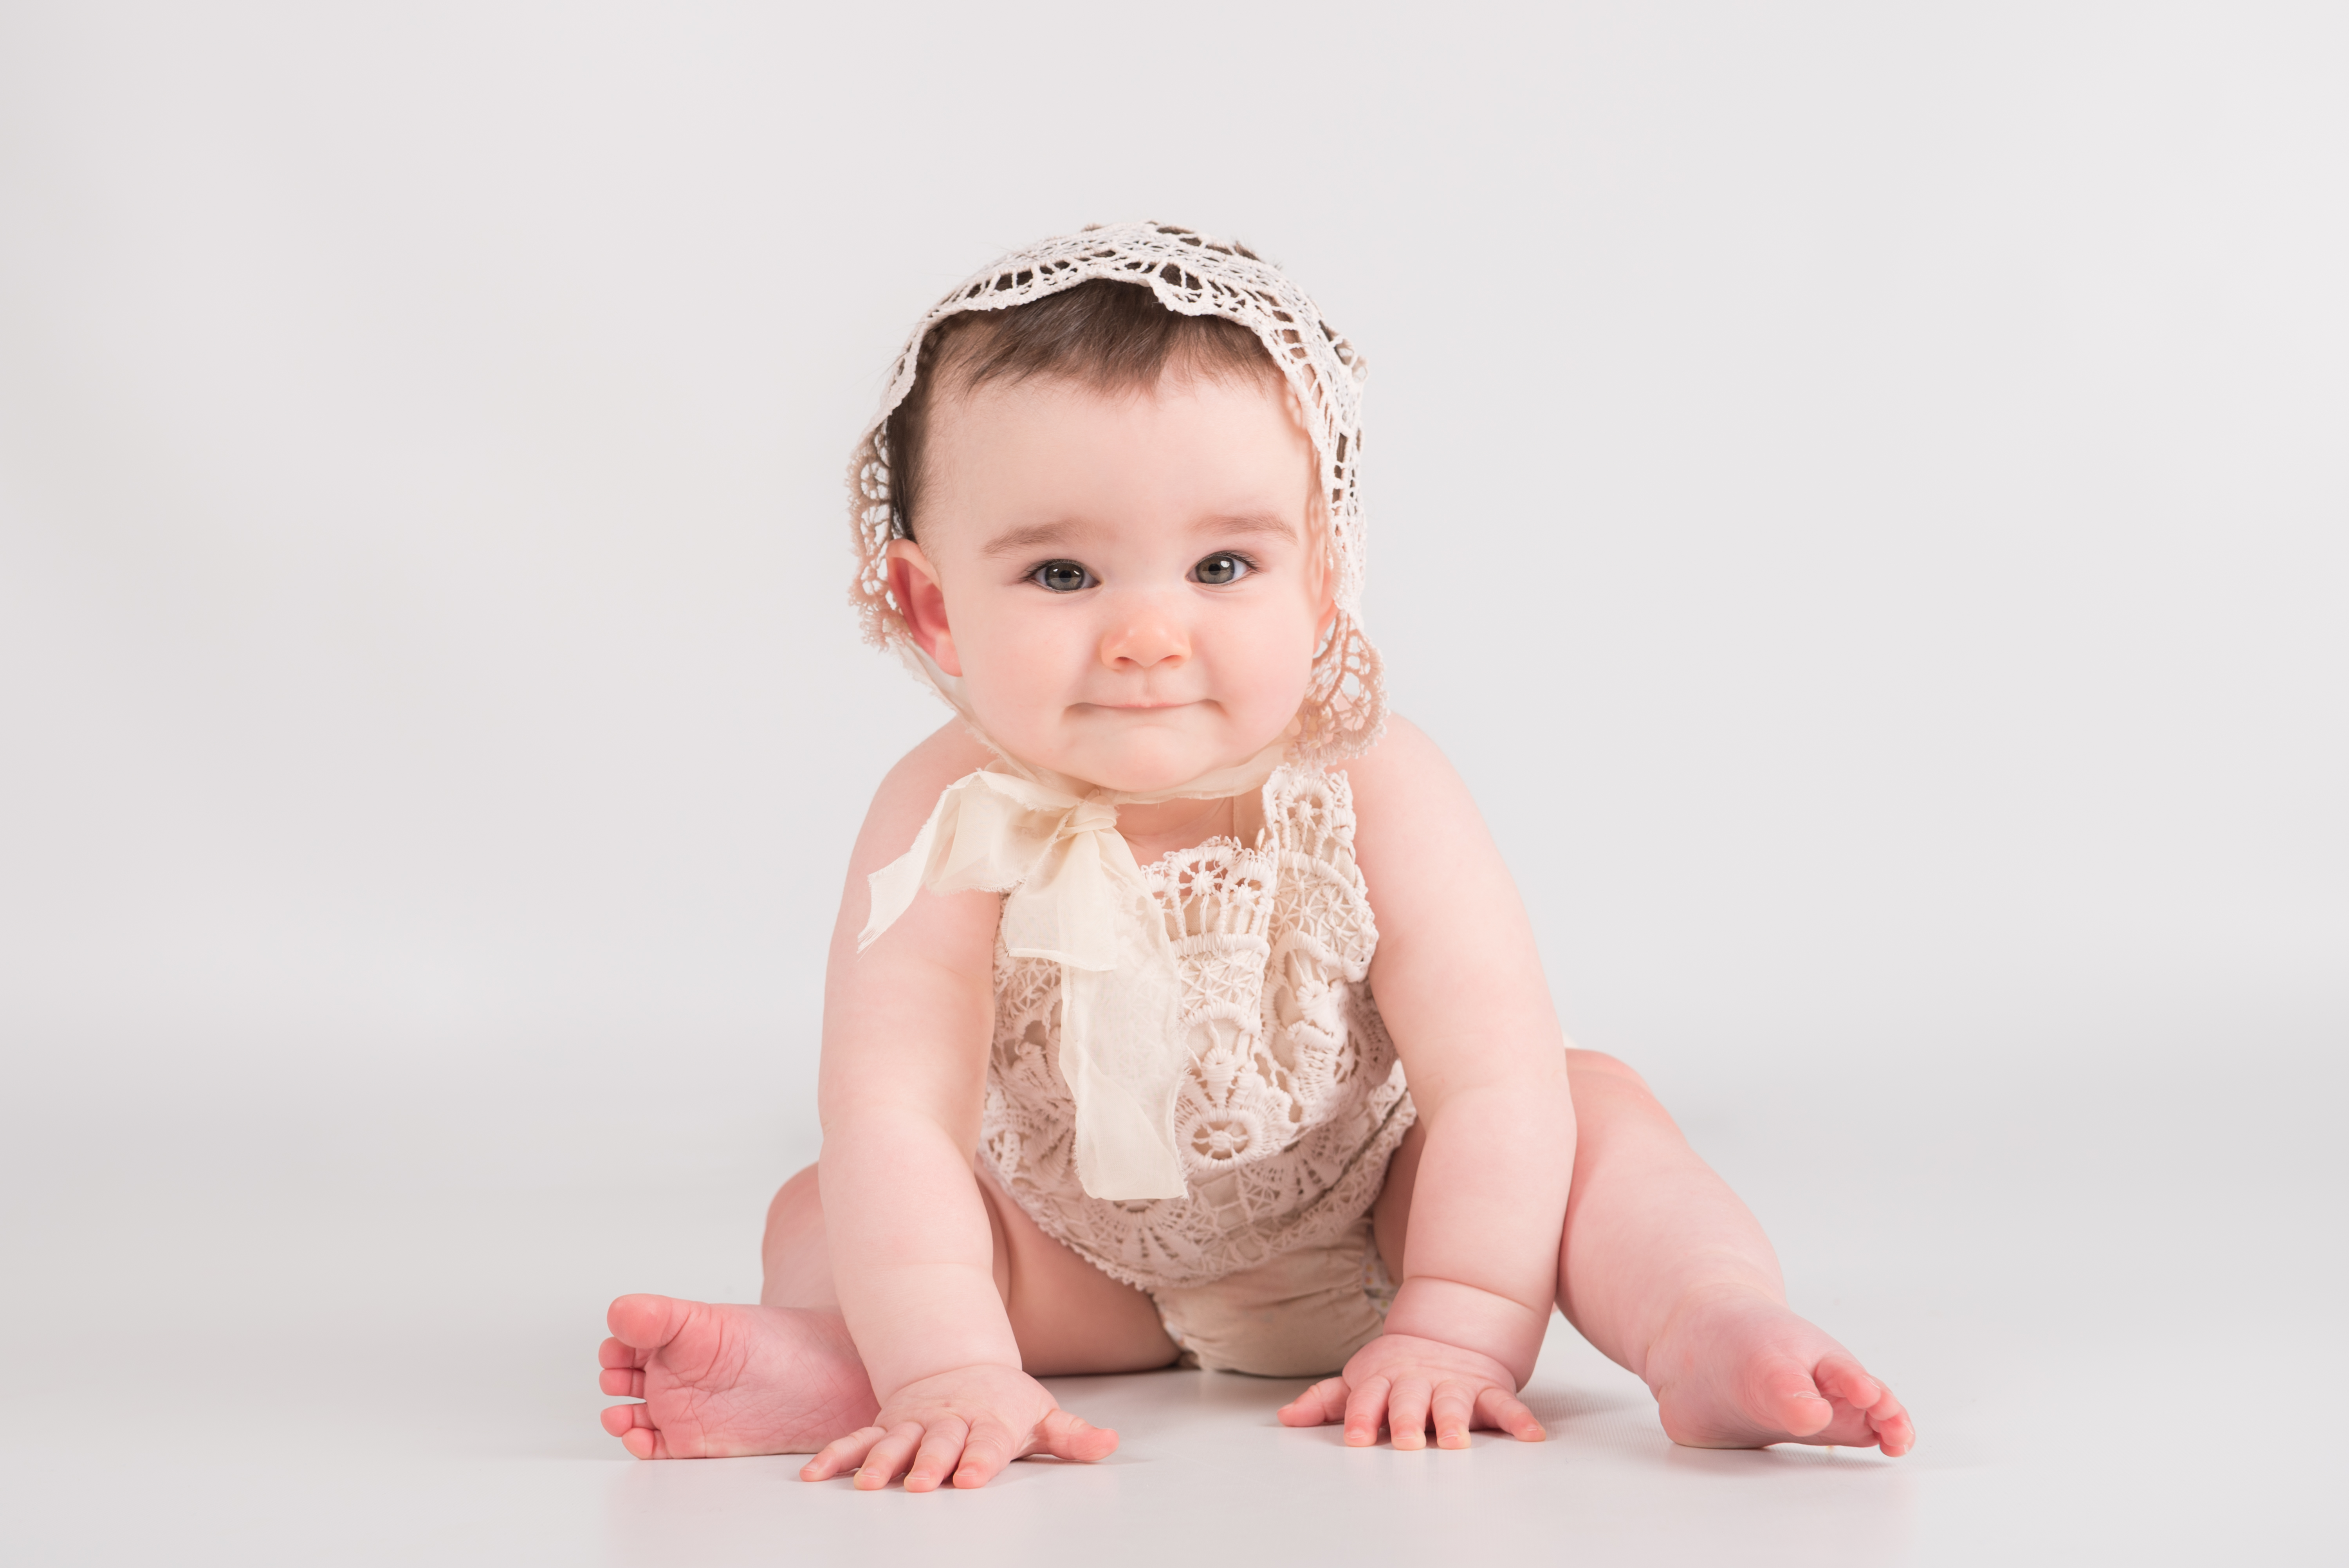 Louth baby photography sessions: Simple, beautiful, timeless